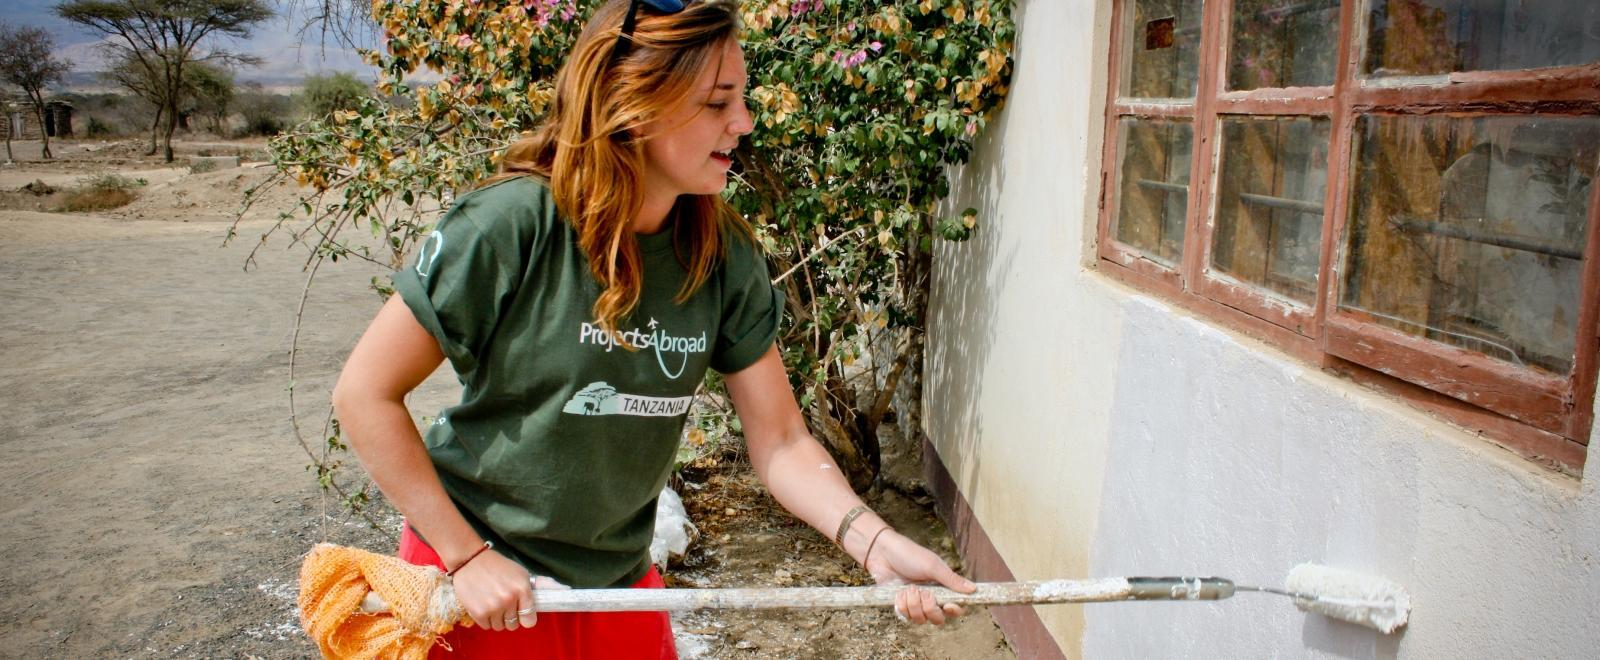 A student doing building volunteer work in Africa helps paint a newly-constructed school in Tanzania.